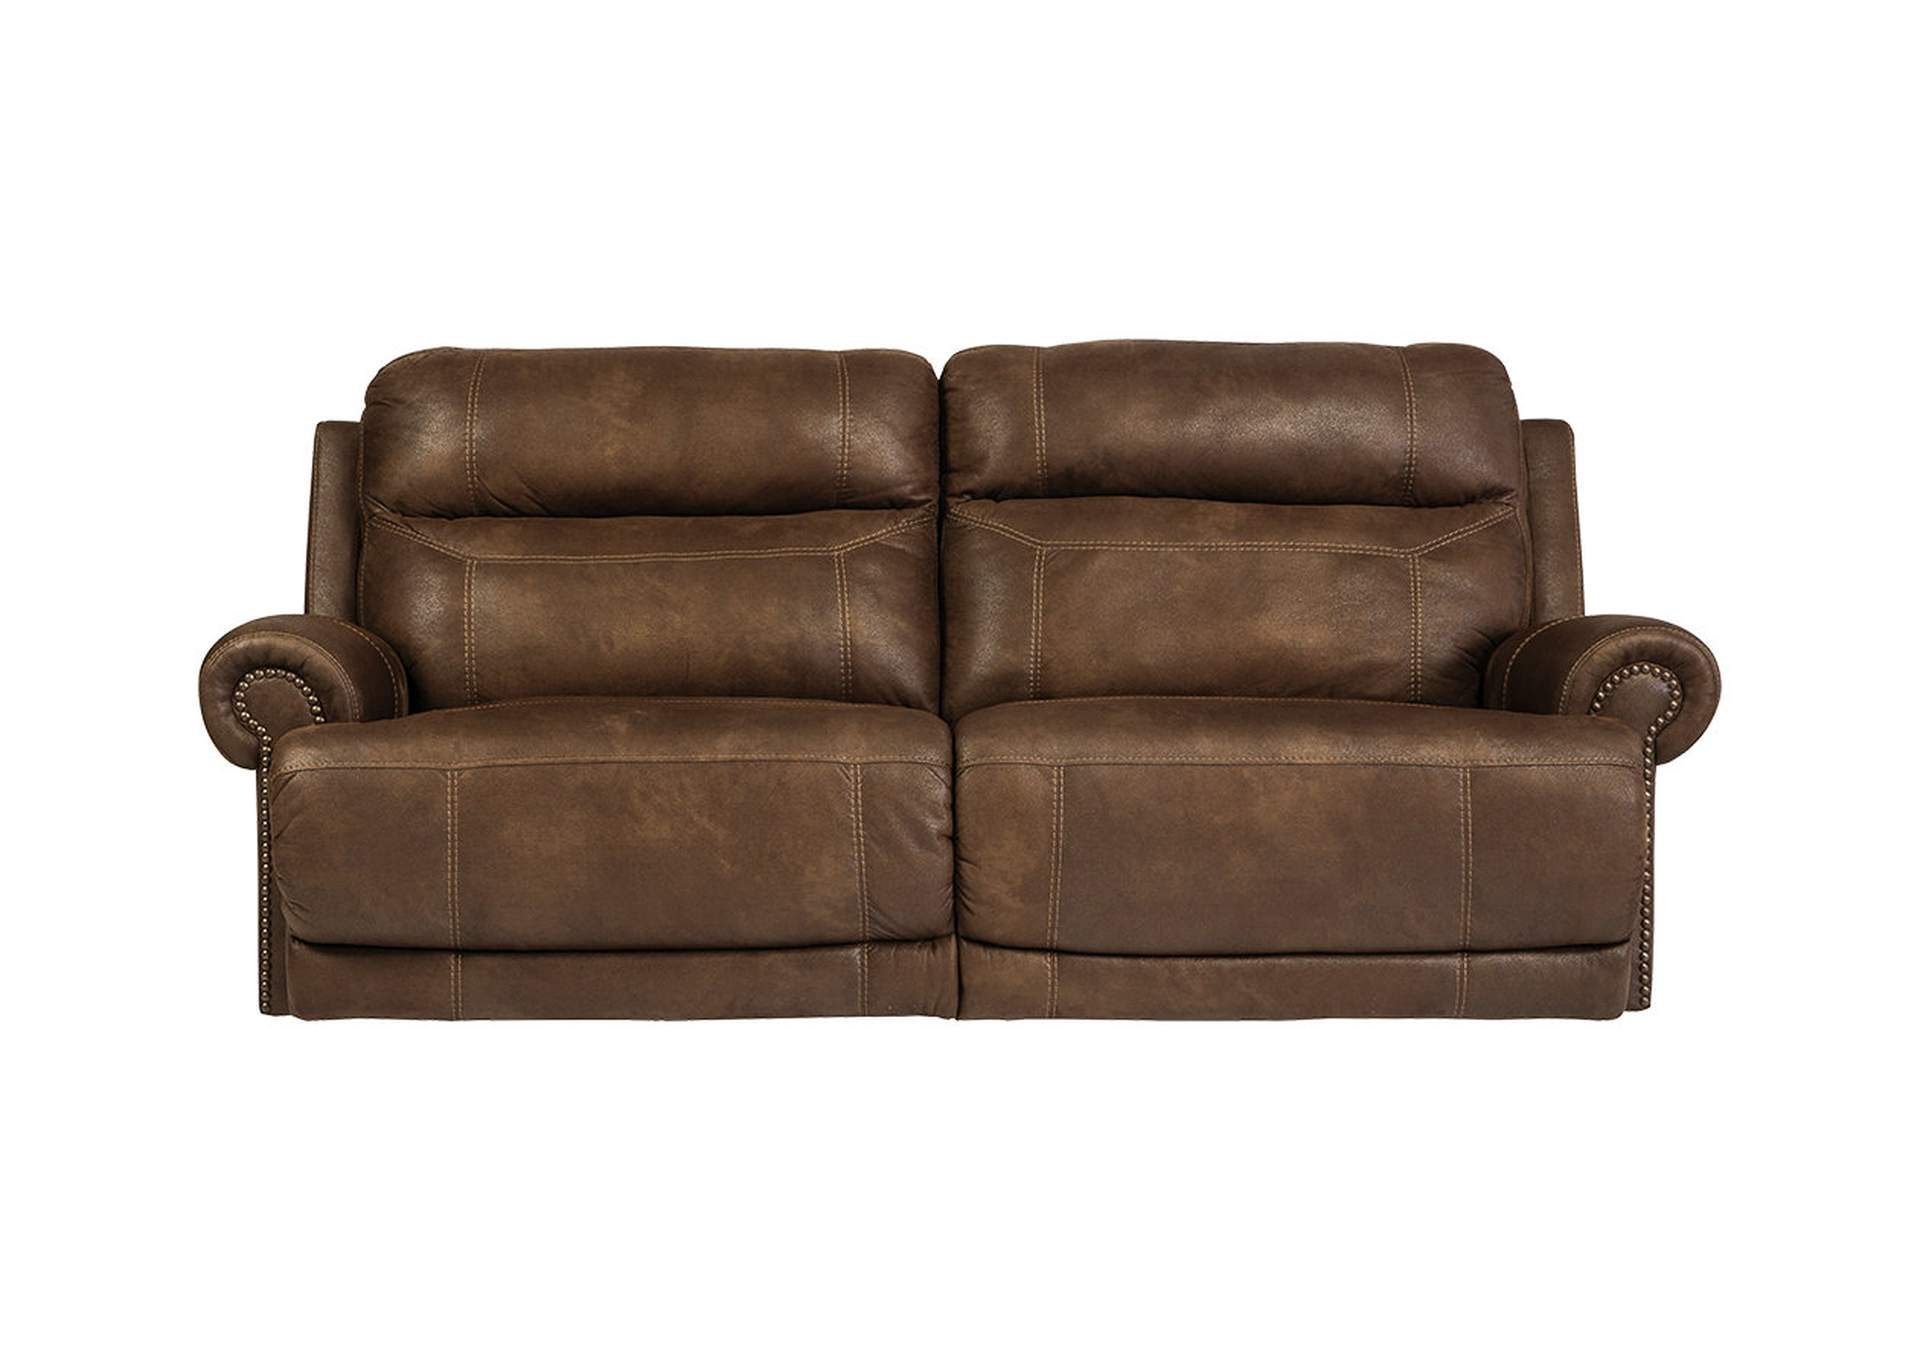 Austere Brown 2 Seat Reclining Power Sofa,Signature Design By Ashley